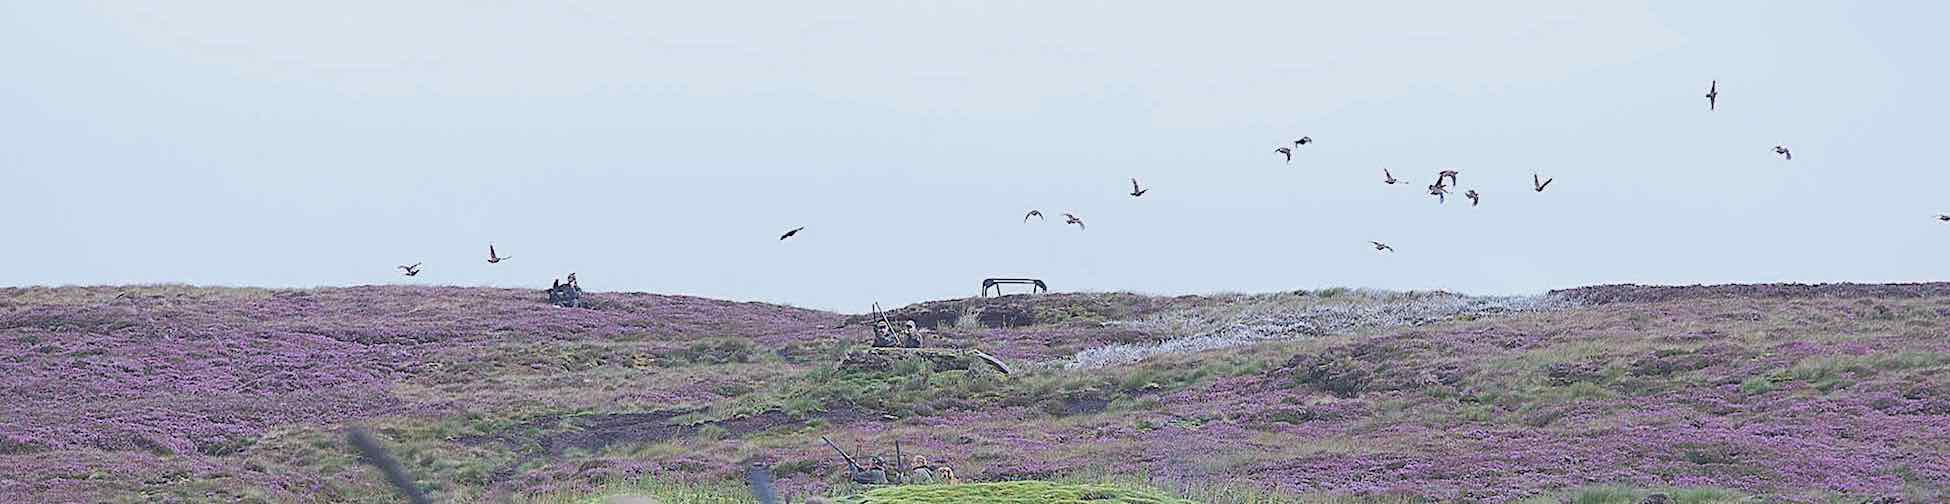 Driven-Red-Grouse-Shooting-England-Line-